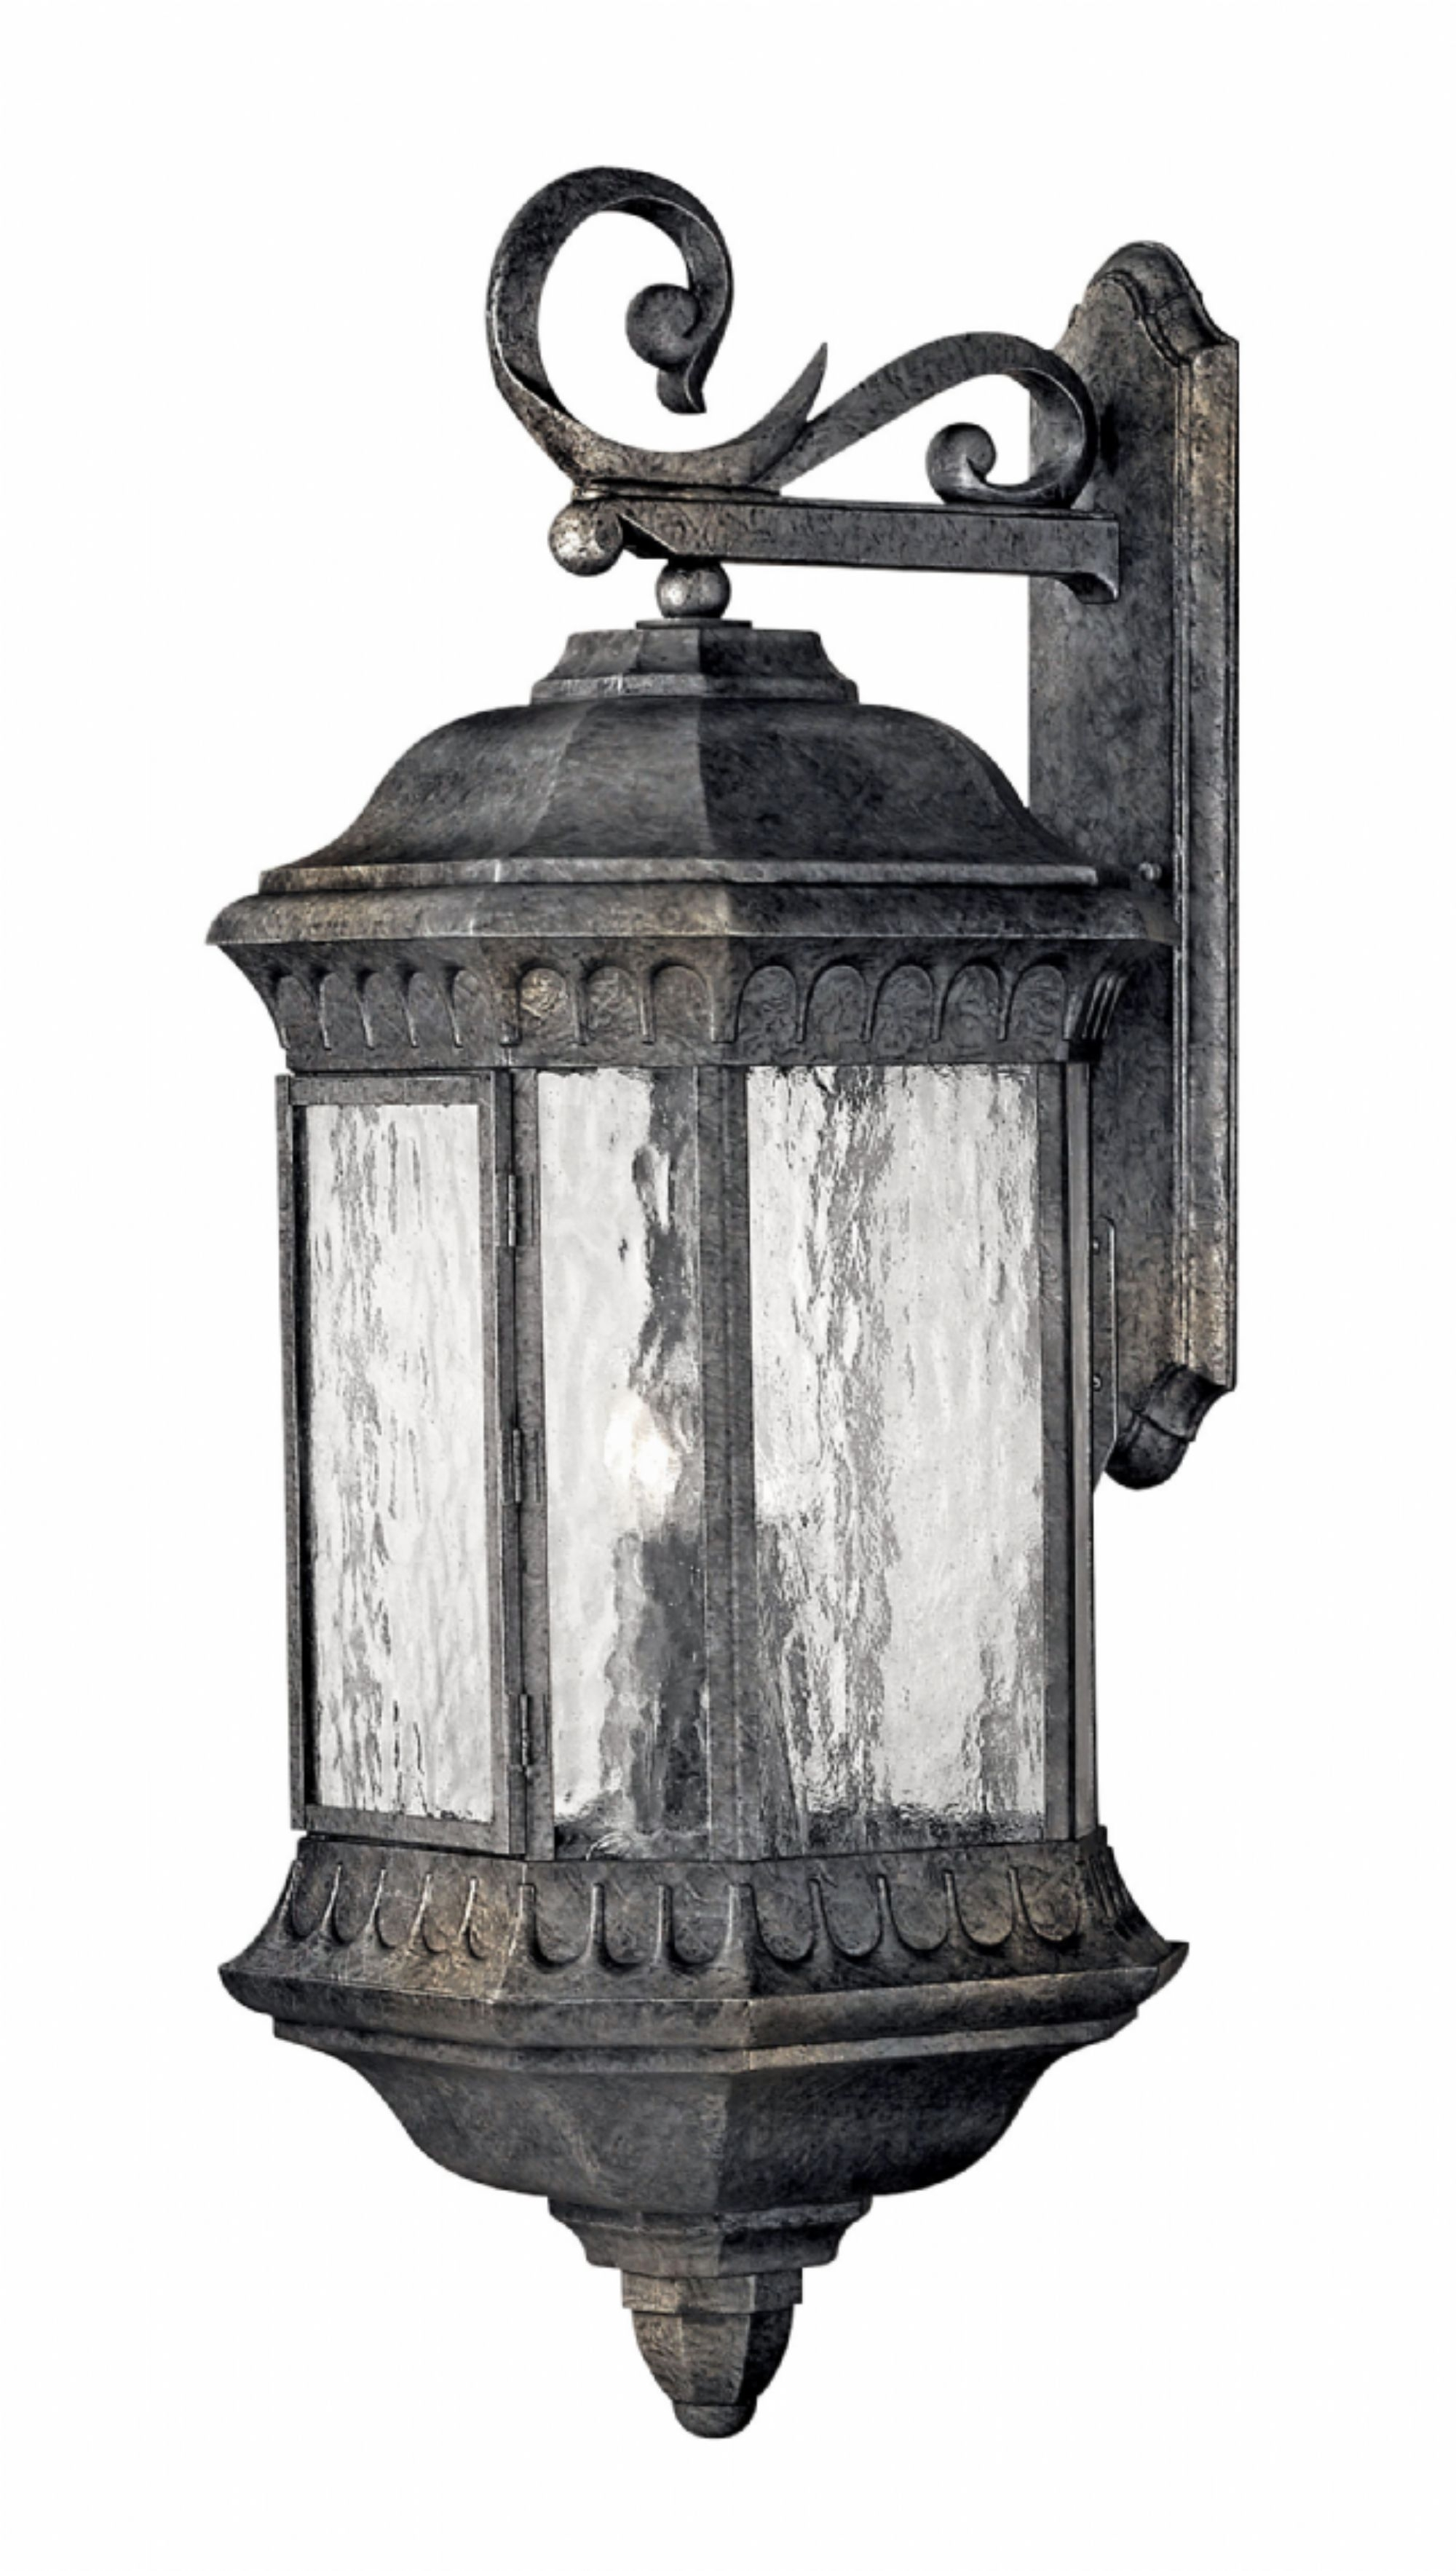 Black Granite Regal > Exterior Wall Mount throughout Wall Mounted Outdoor Lanterns (Image 2 of 20)